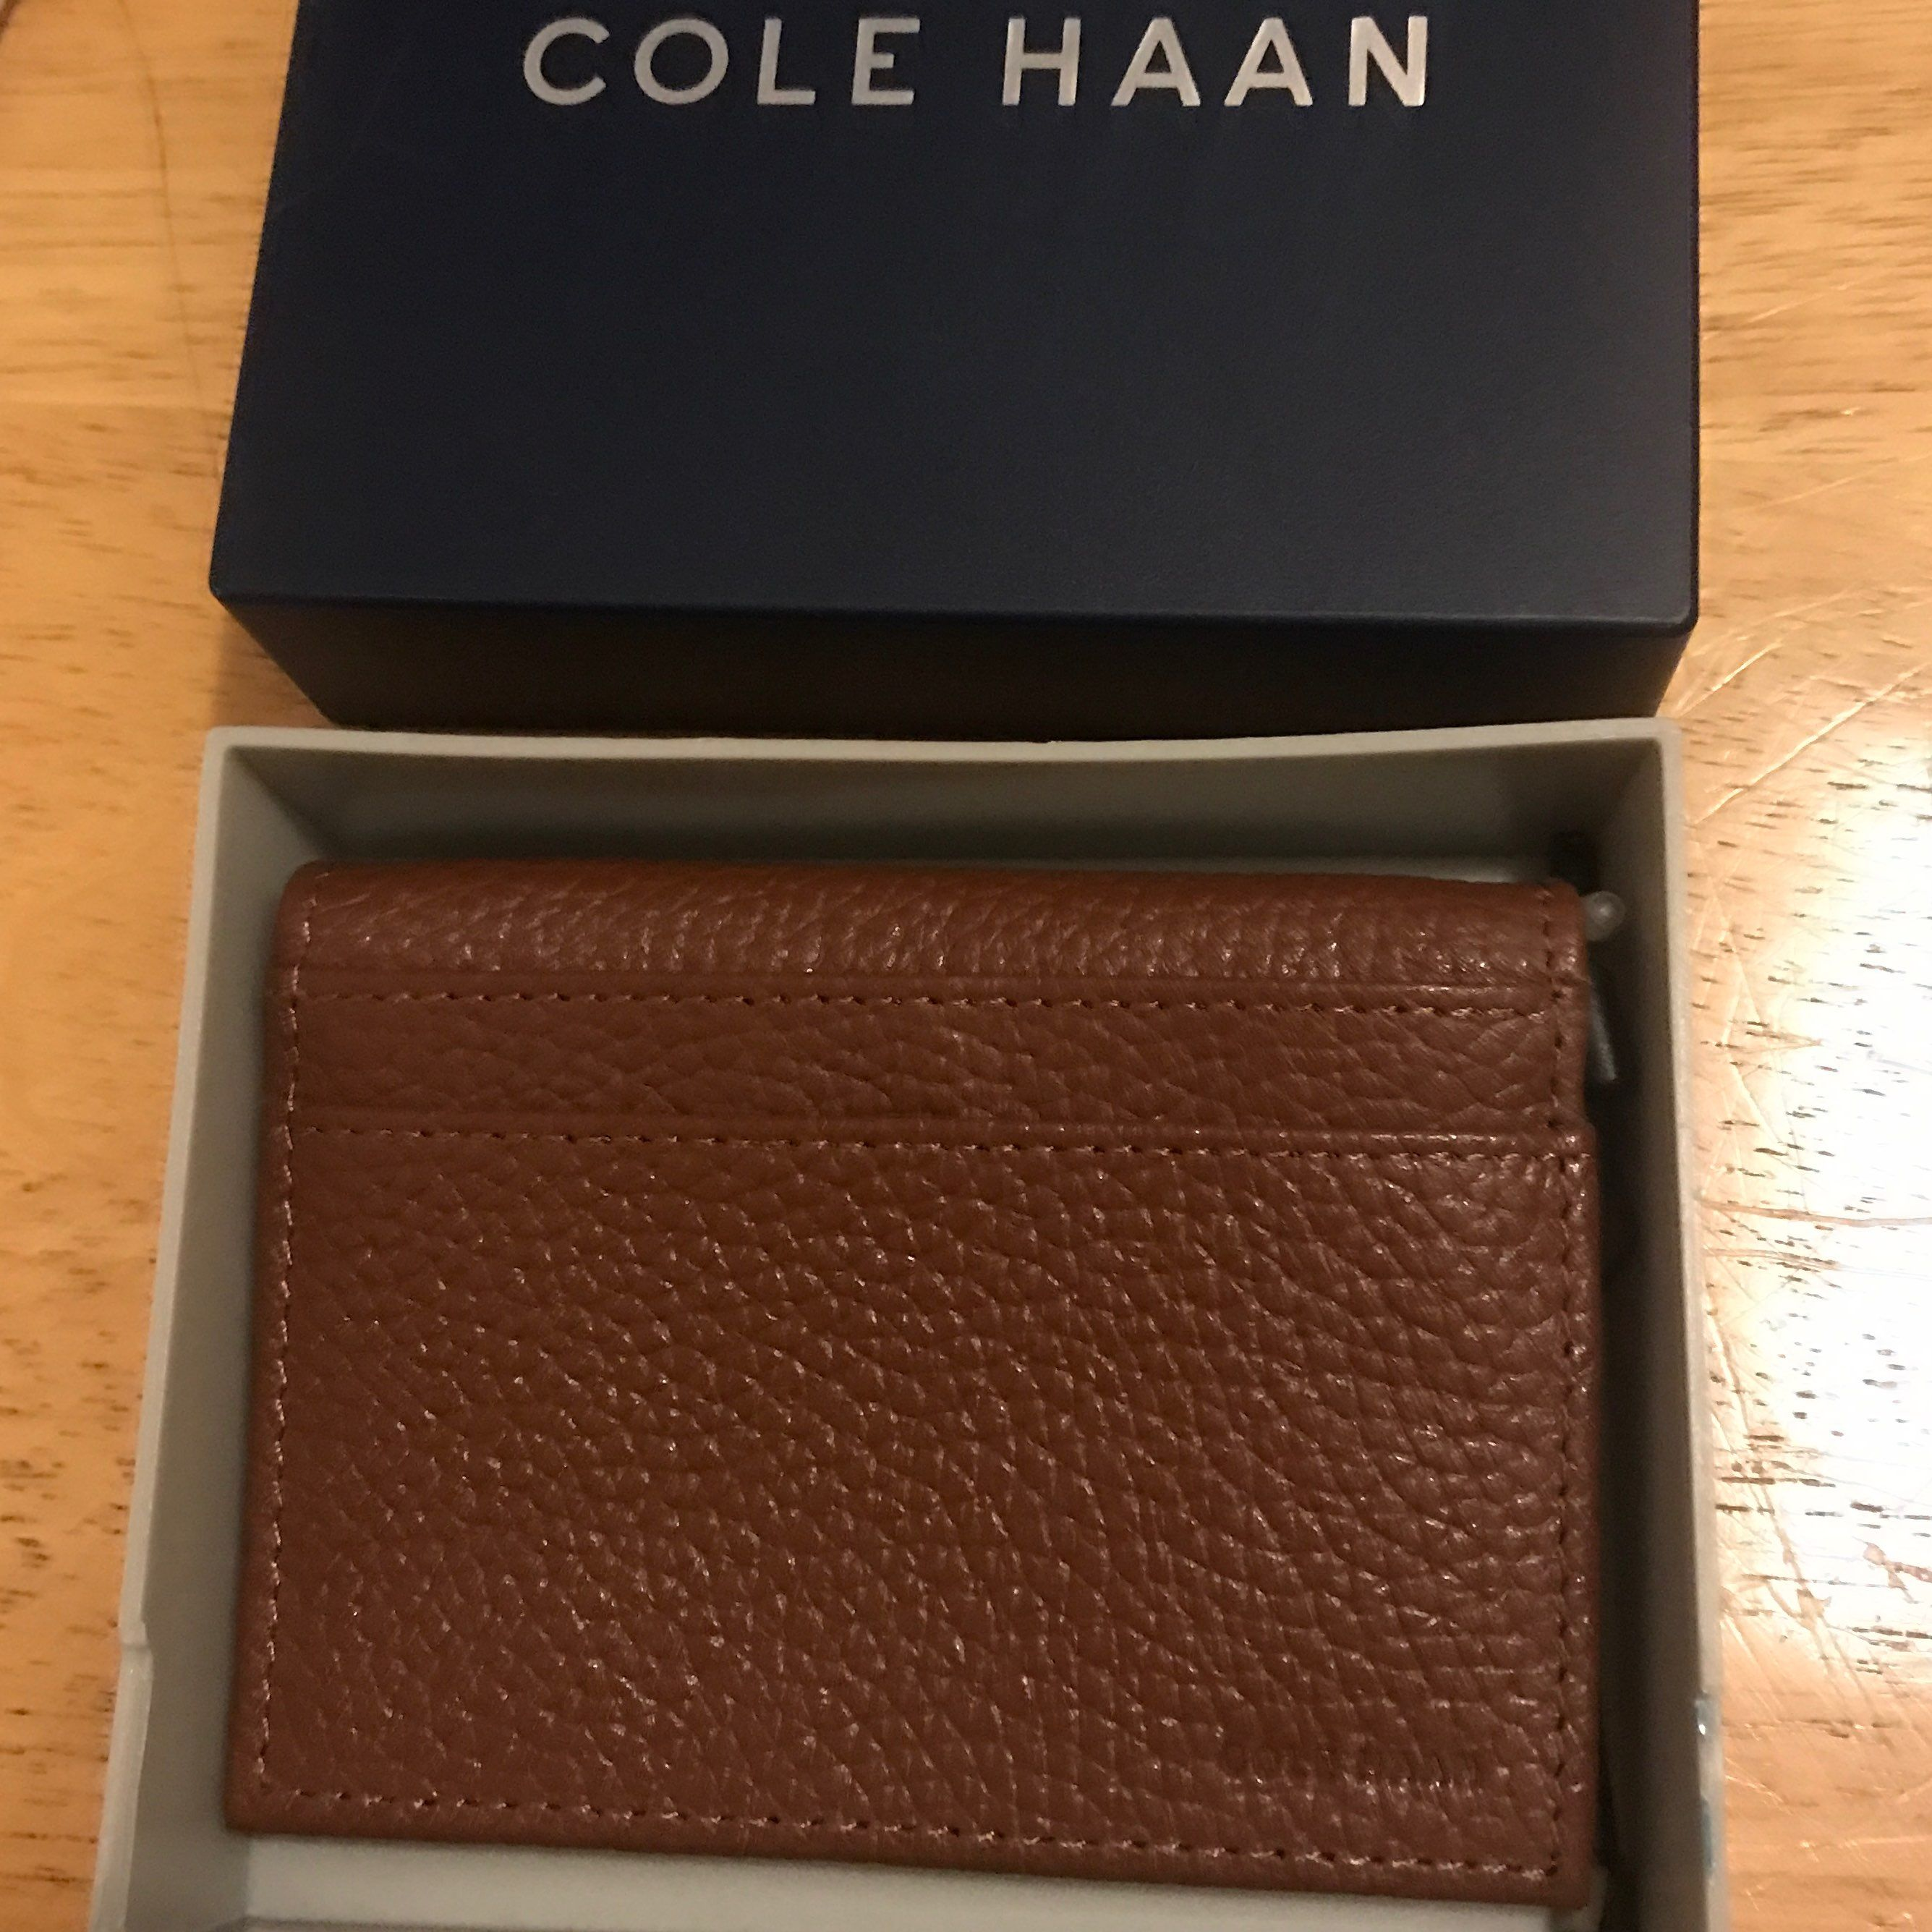 COLE HAAN MEN PICTURE ID LEATHER WALLET